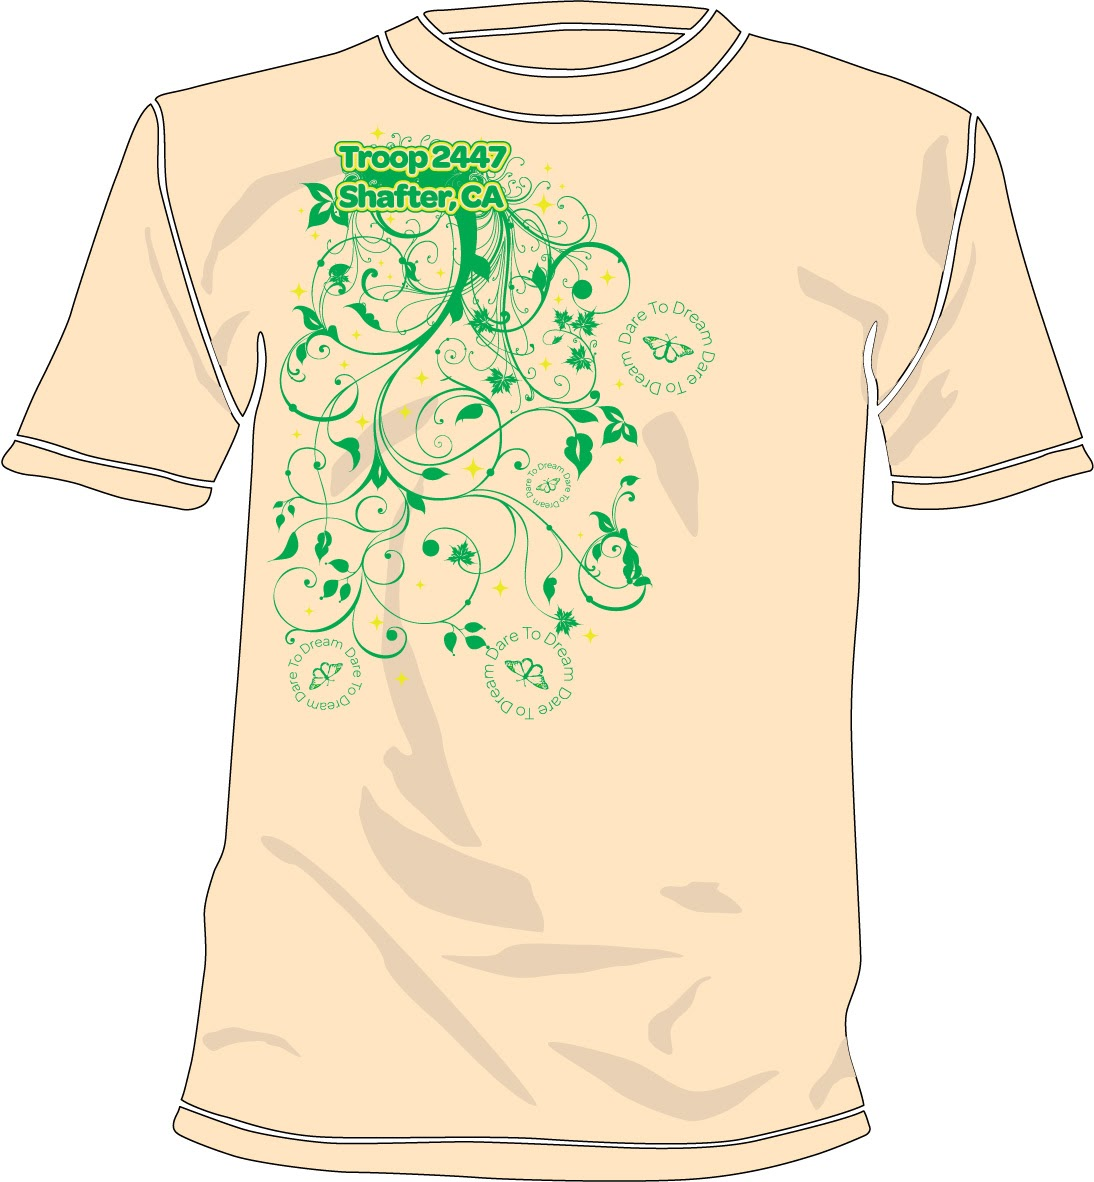 Girl Scout T Shirt Design Ideas The Price Is Very Inexpensive 10 Per Shirt